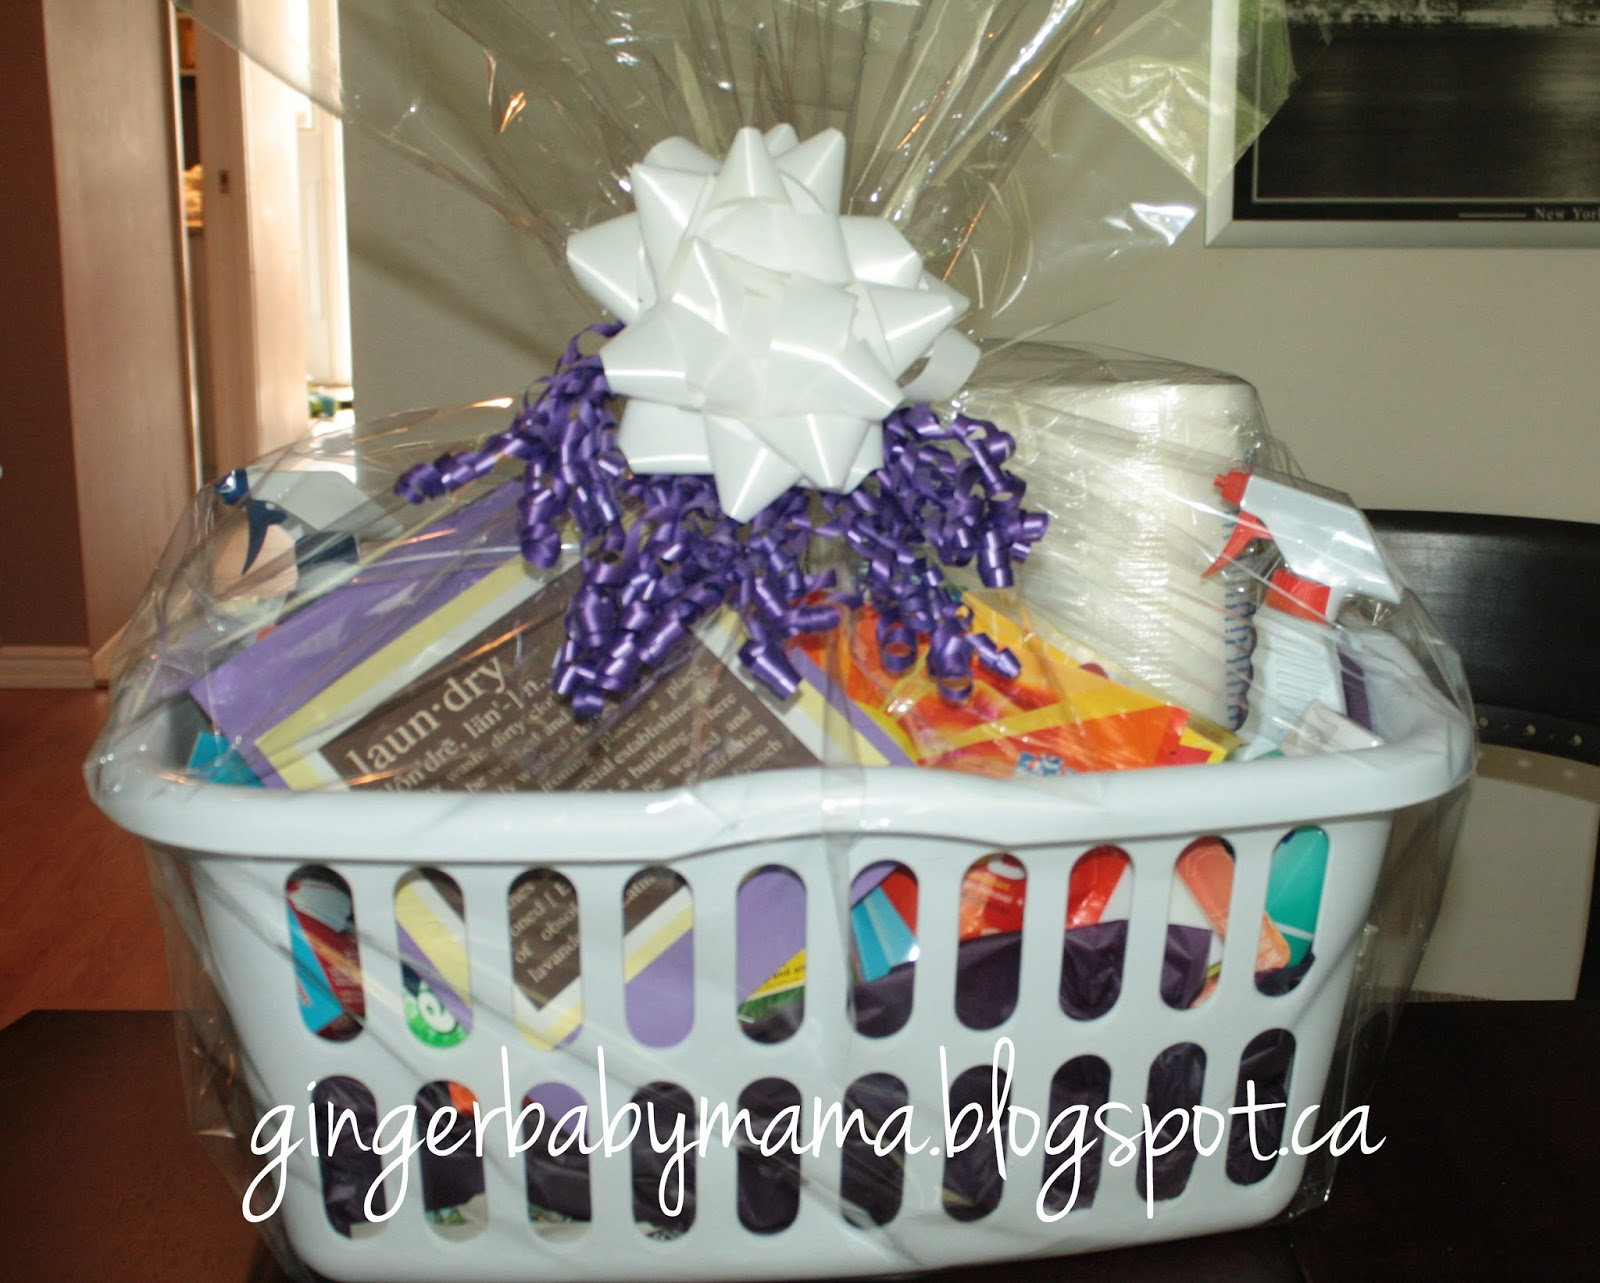 life tag basket mode gifts la bridal shower img gift